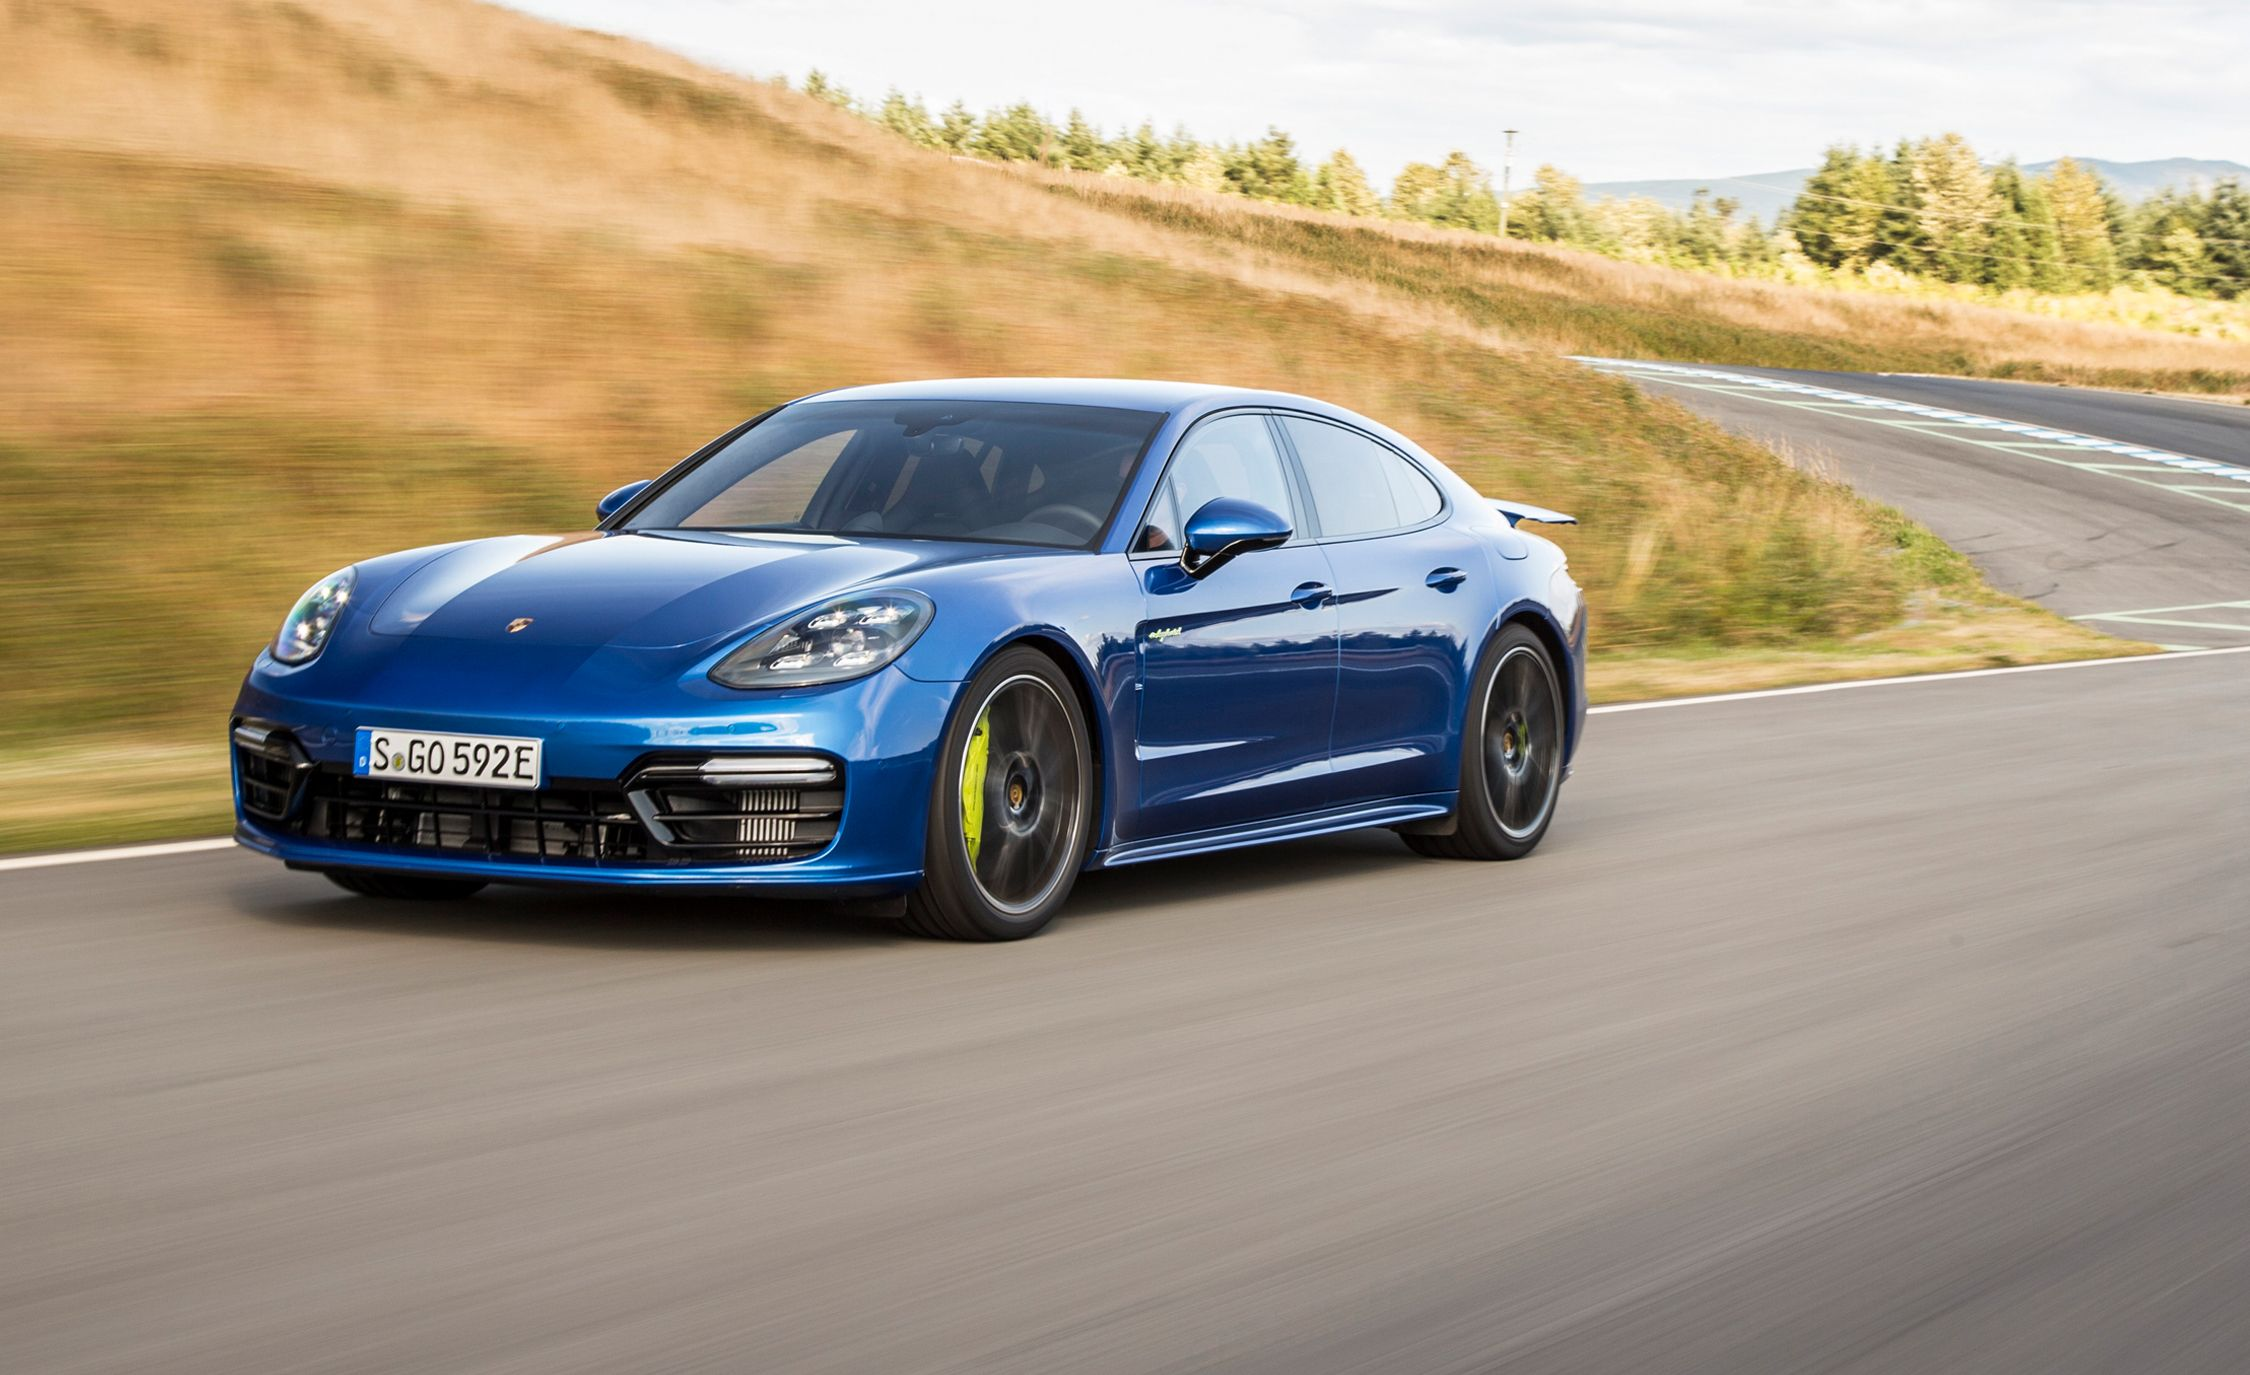 2018 porsche panamera gts. Beautiful Gts 2018 Porsche Panamera Turbo S EHybrid First Drive  Review Car And Driver And Porsche Panamera Gts N